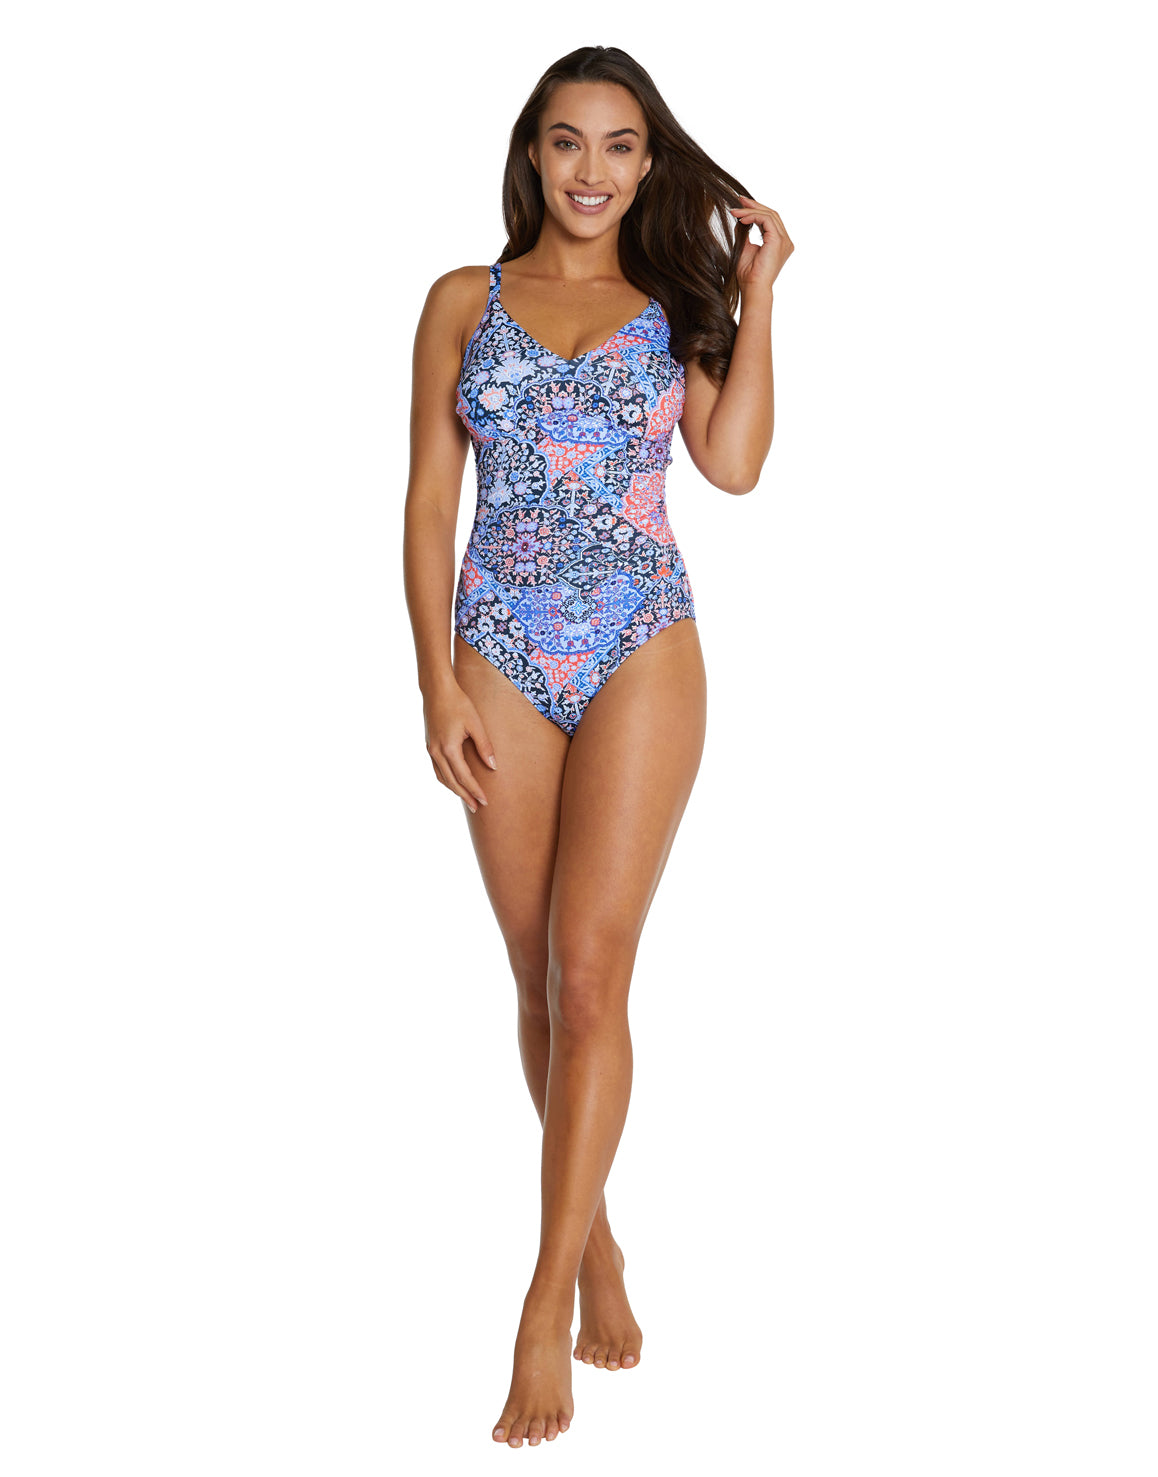 GALAPAGOS D-E CUP UNDERWIRE ONE PIECE SWIMSUIT